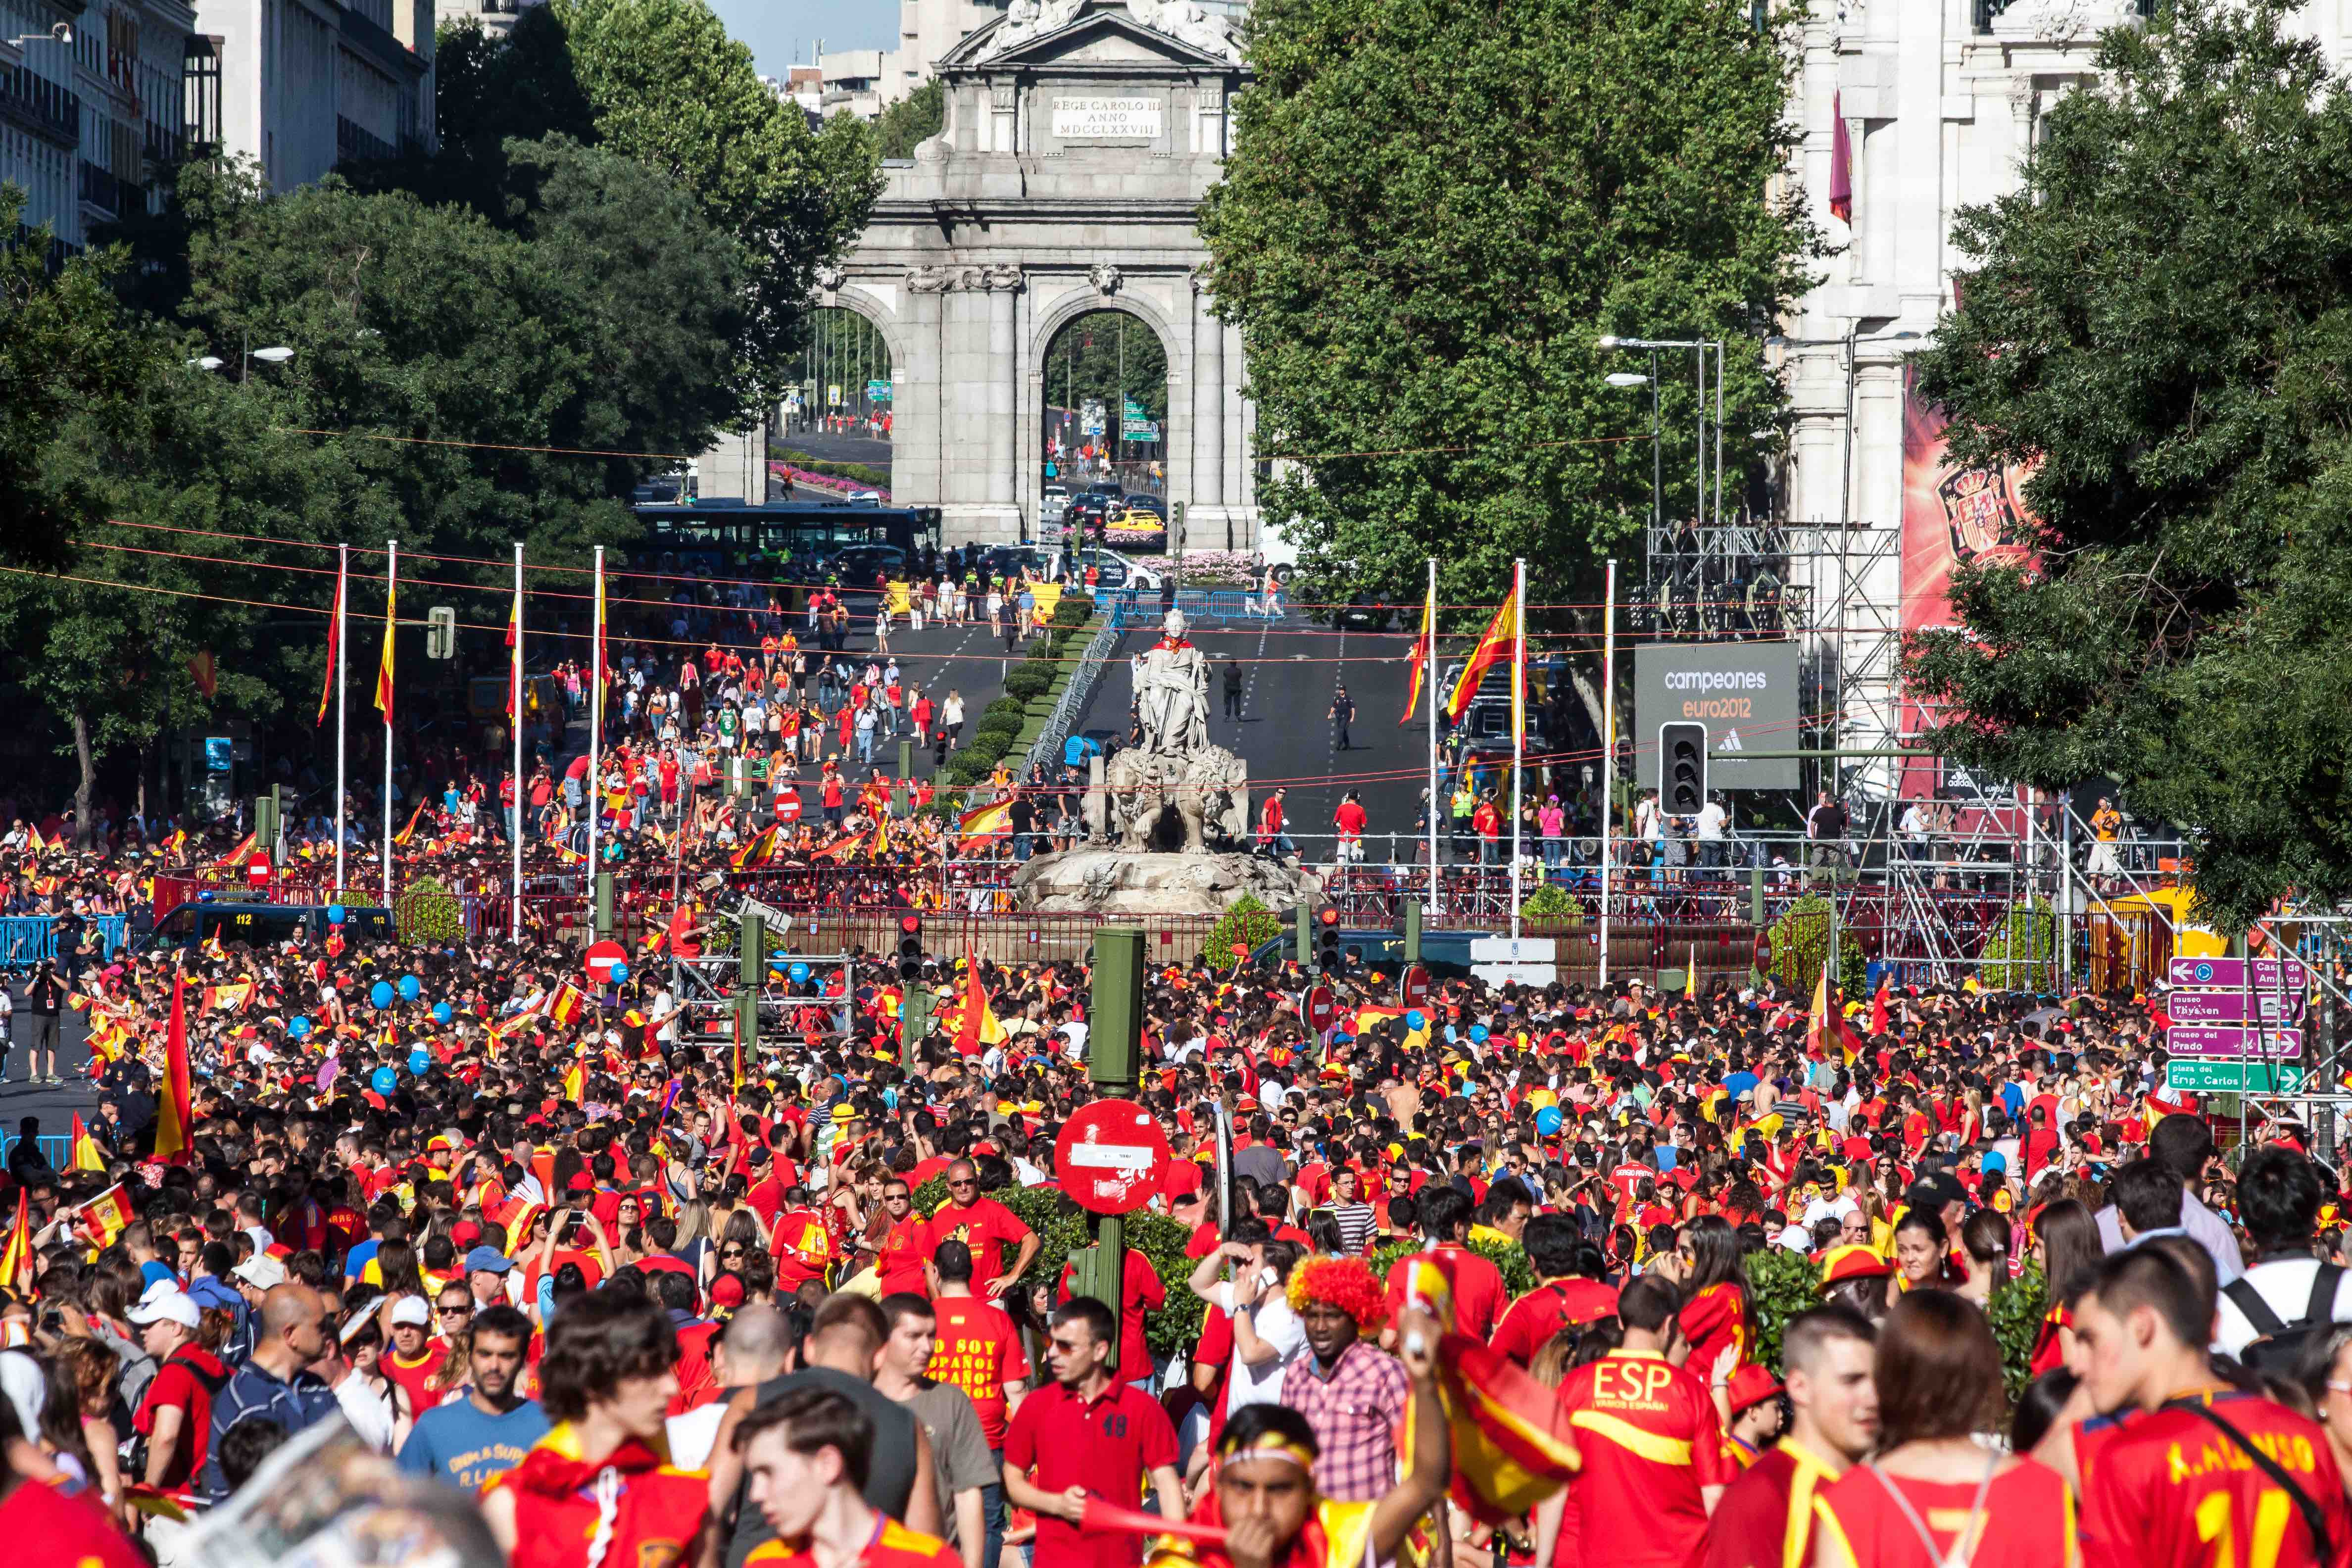 Excited Spanish fans celebrate in the Plaza de Cibeles in the victory of the Spanish football team.